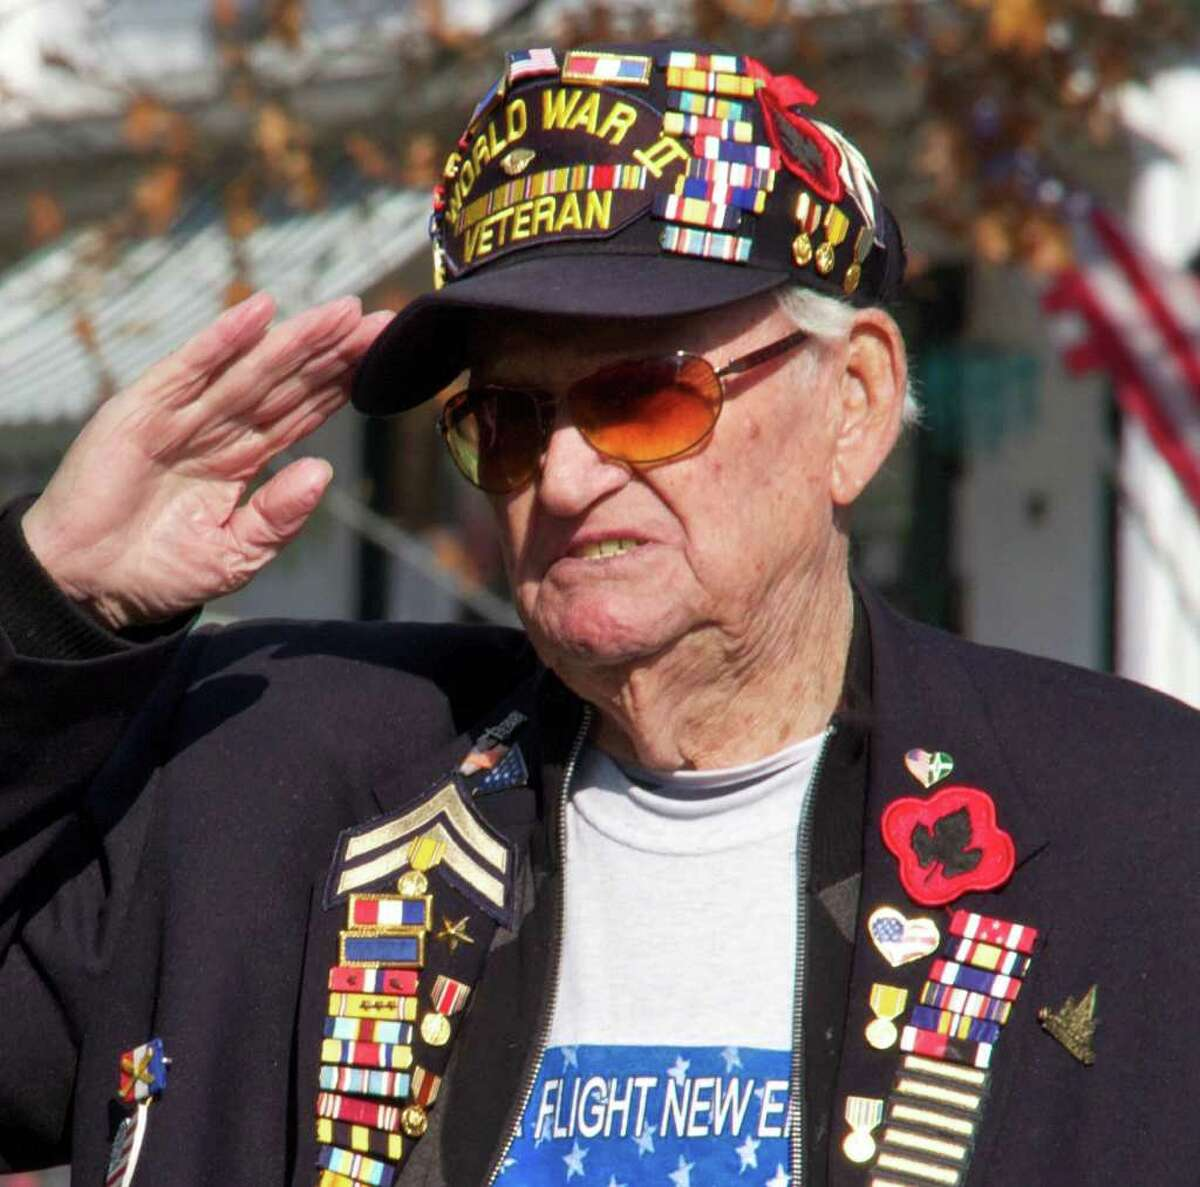 Ed Whaley, a World War II veteran from New Milford, salutes the flag while Curtis Thompson sings the National Anthem at the Veterans Day Ceremony on the New Milford Green on November 11, 2011 at 11:11am.